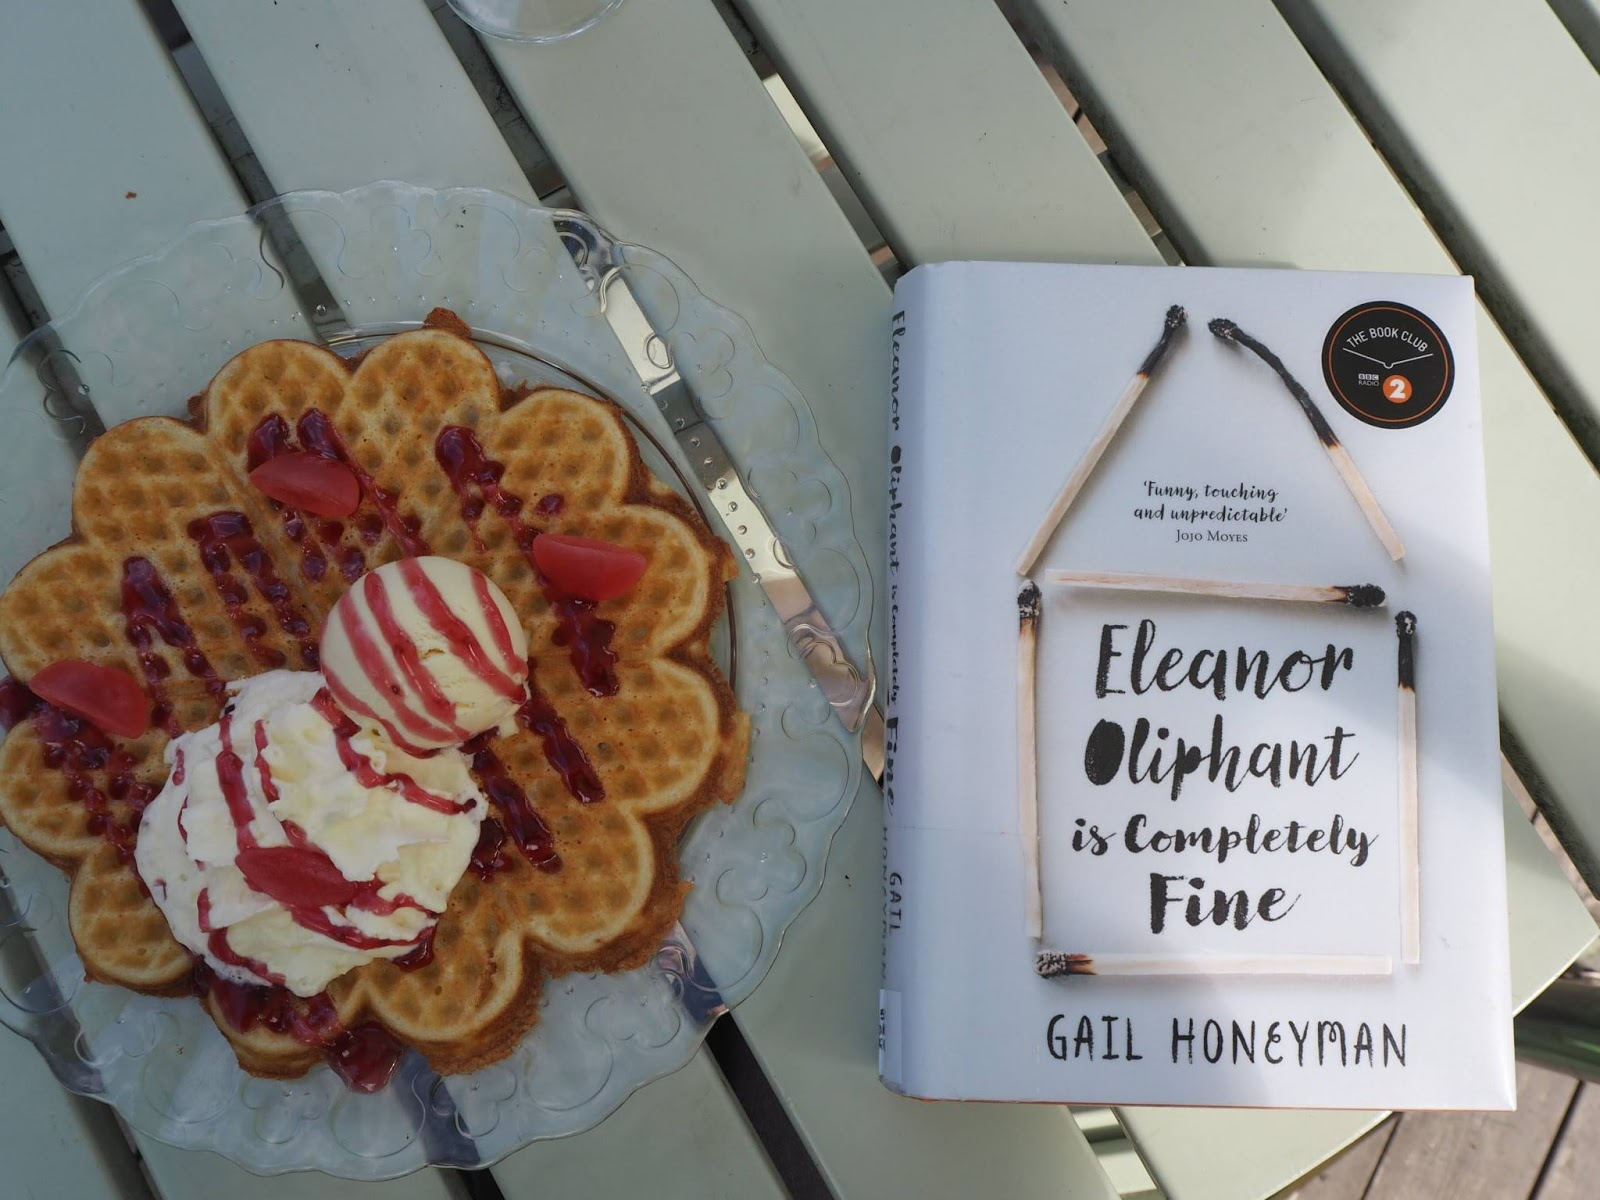 Skies and Fairytales  Eleanor Oliphant is Completely Fine   Gail     Eleanor Oliphant is Completely Fine is Gail Honeyman s debut work  It s a  very heartfelt  funny and sad story about a young woman who s good at going